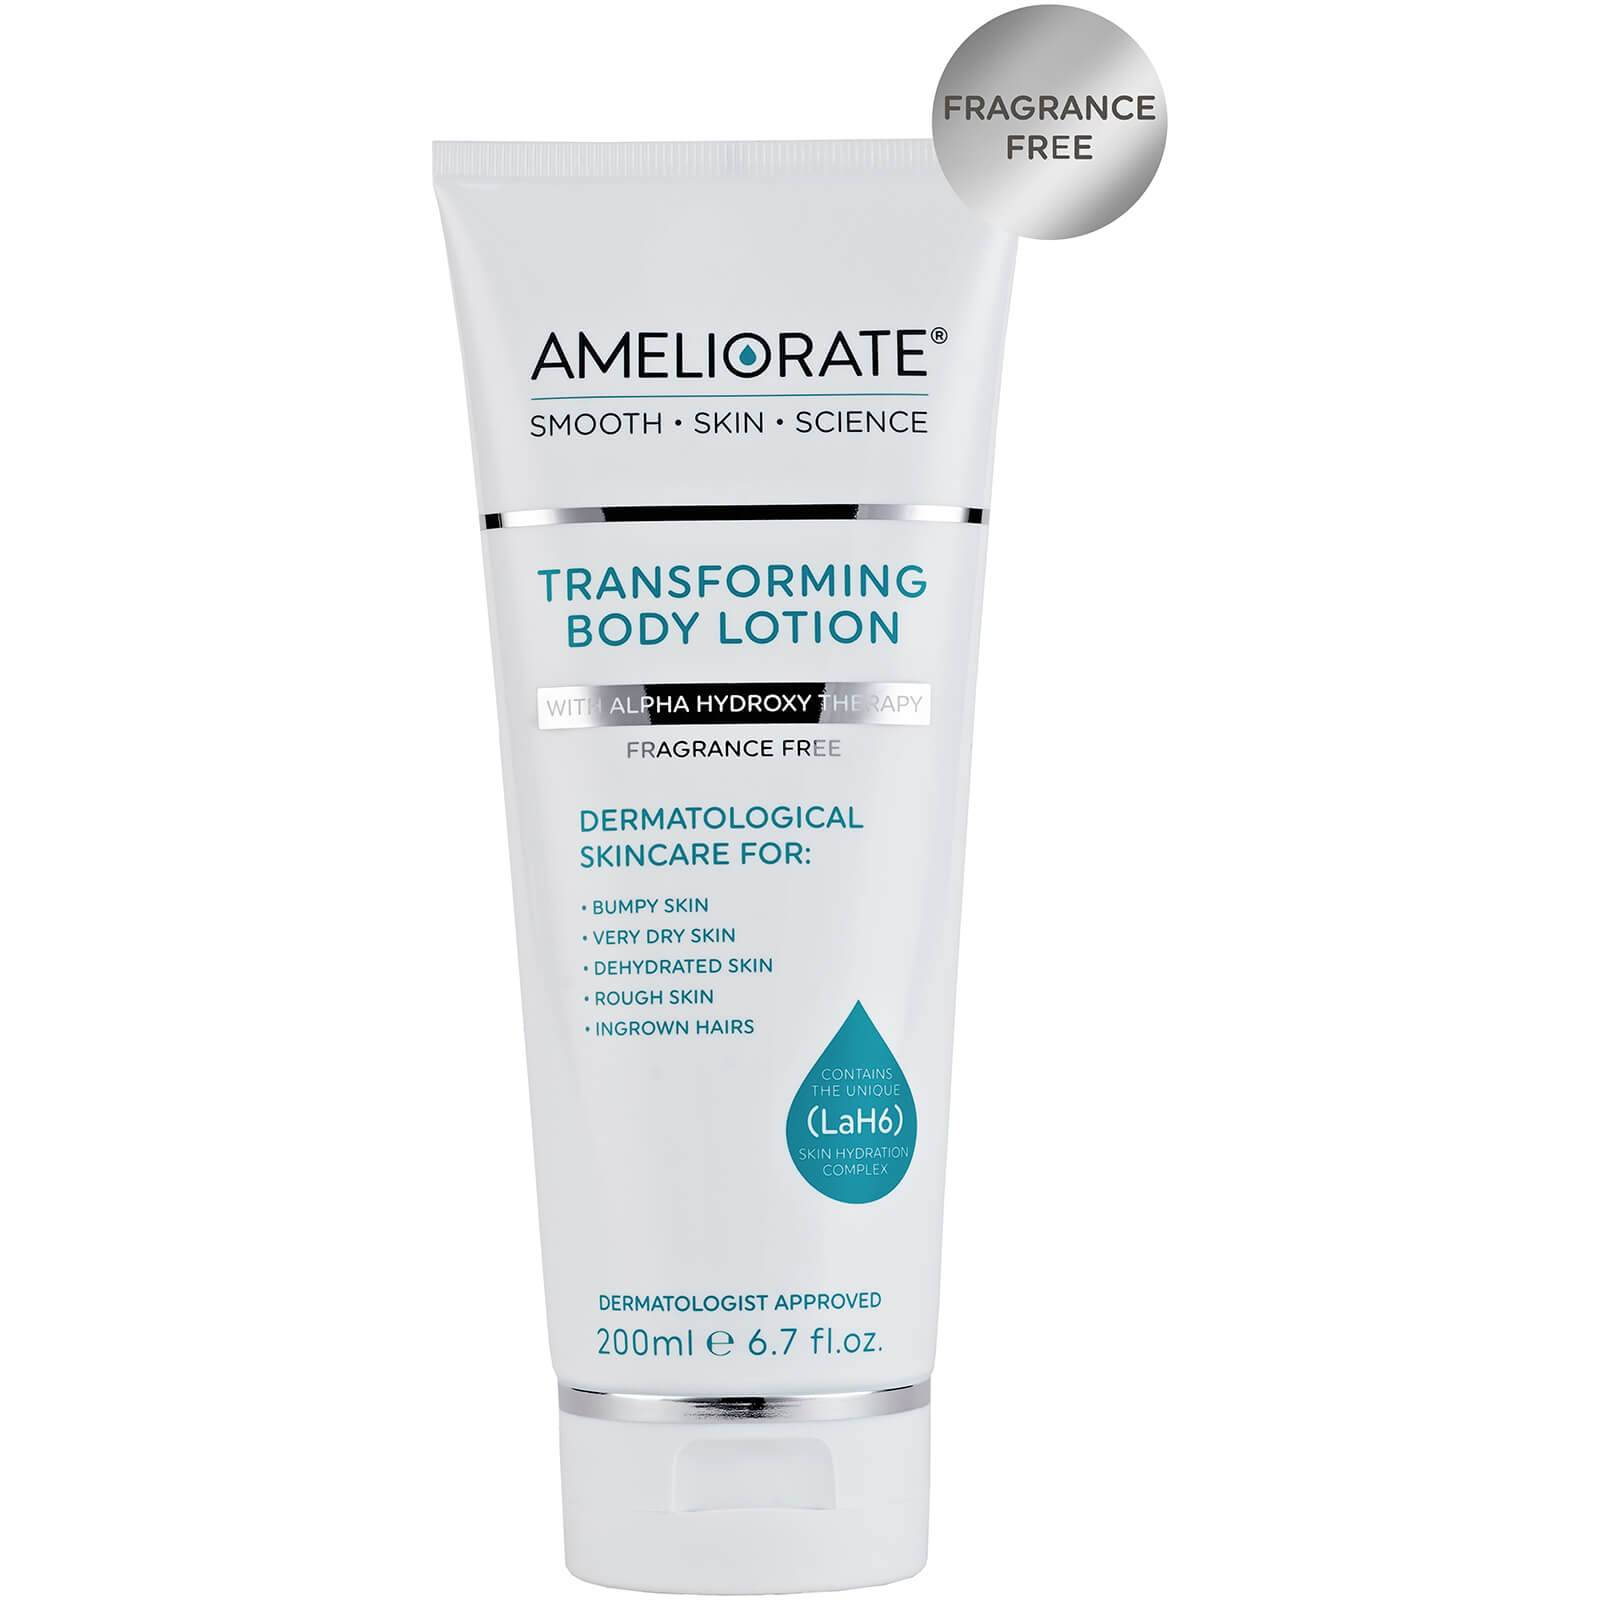 AMELIORATE Transforming Body Lotion Fragrance Free 200ml